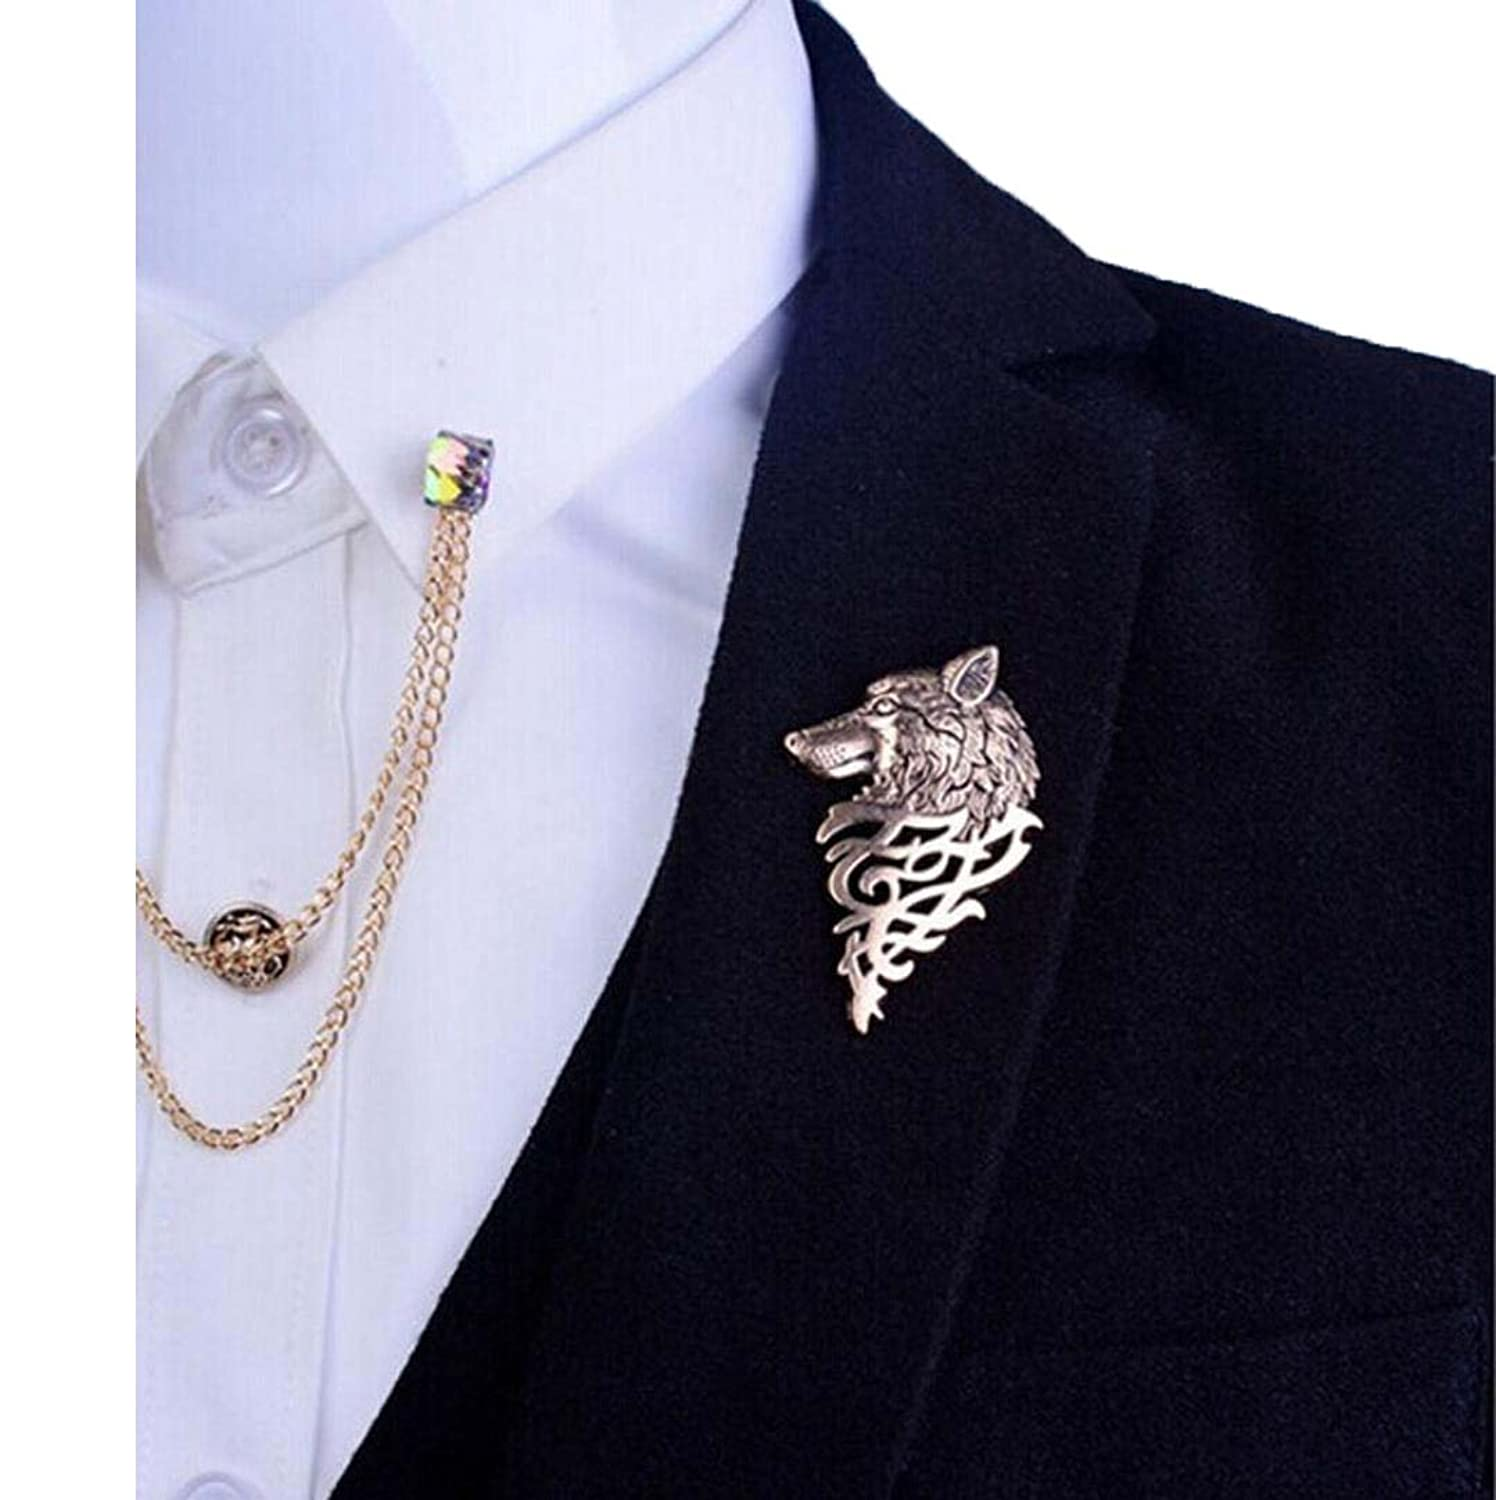 fullxfull flower listing best stick pin feather brooch seug man il hat peacock lapel suit groom